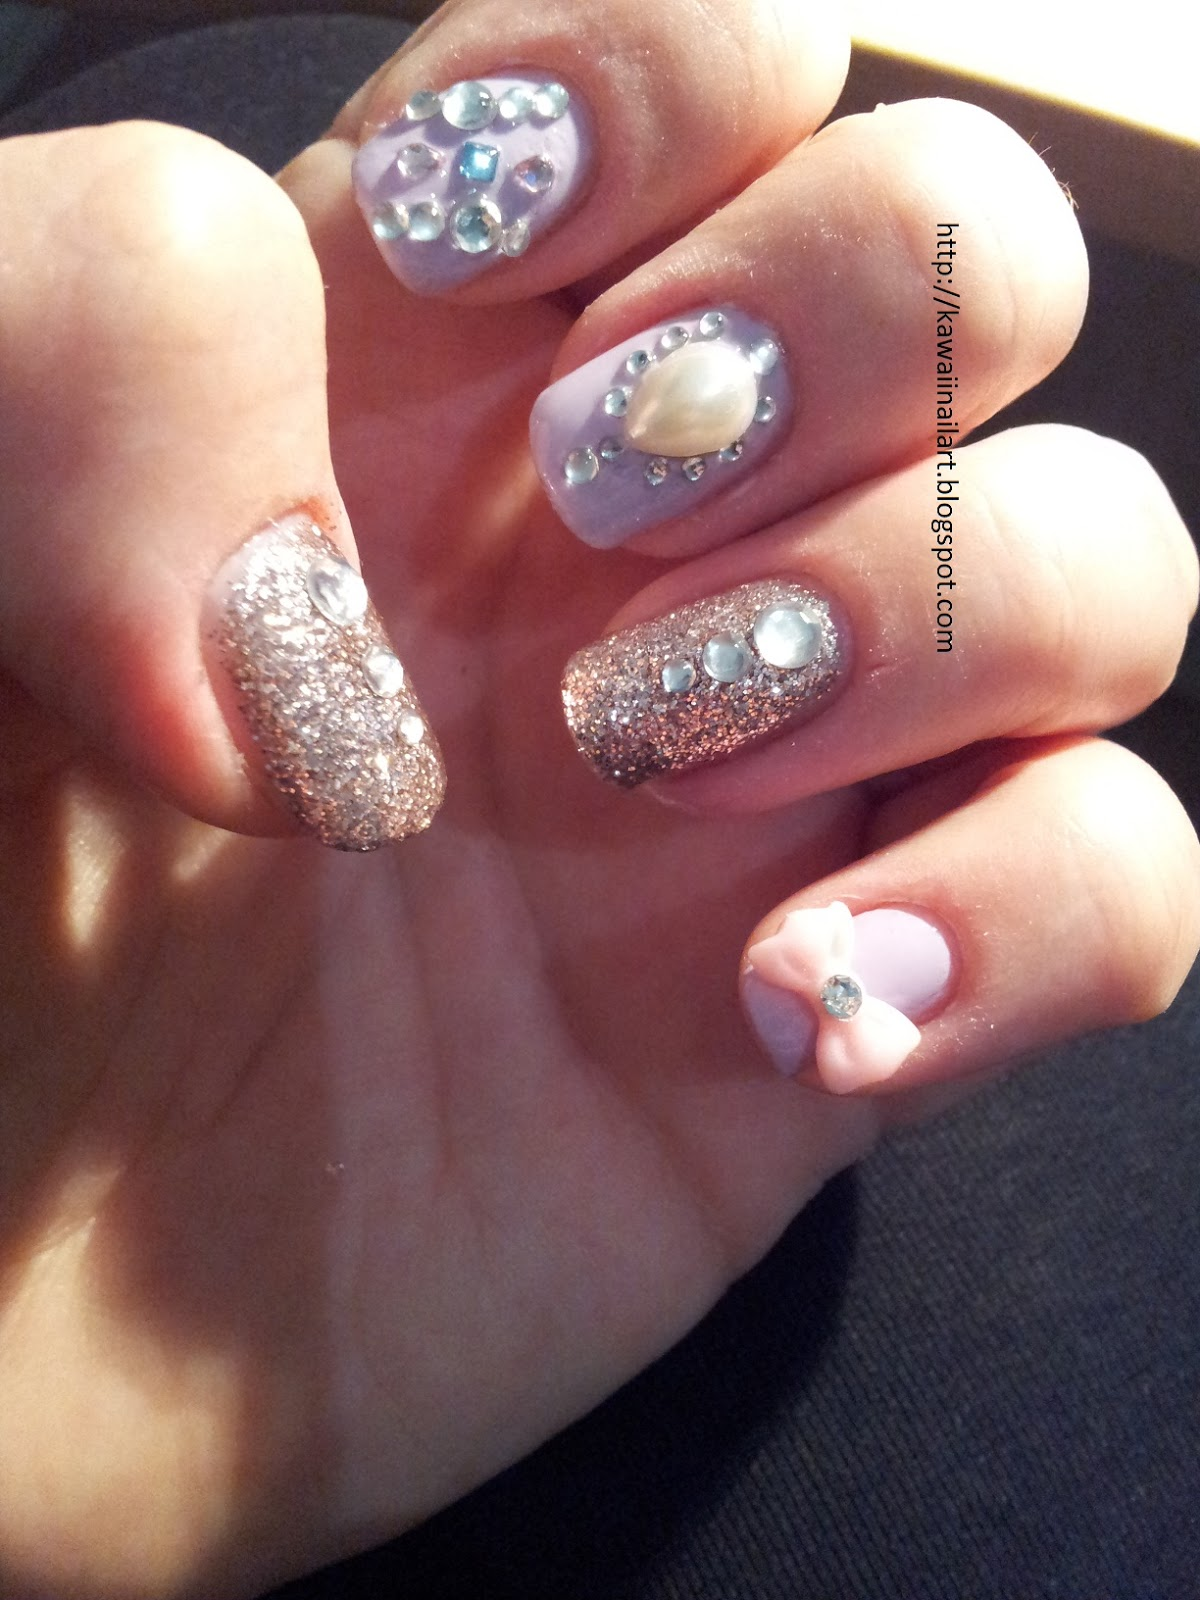 Nail Designs with Rhinestones and Pearls